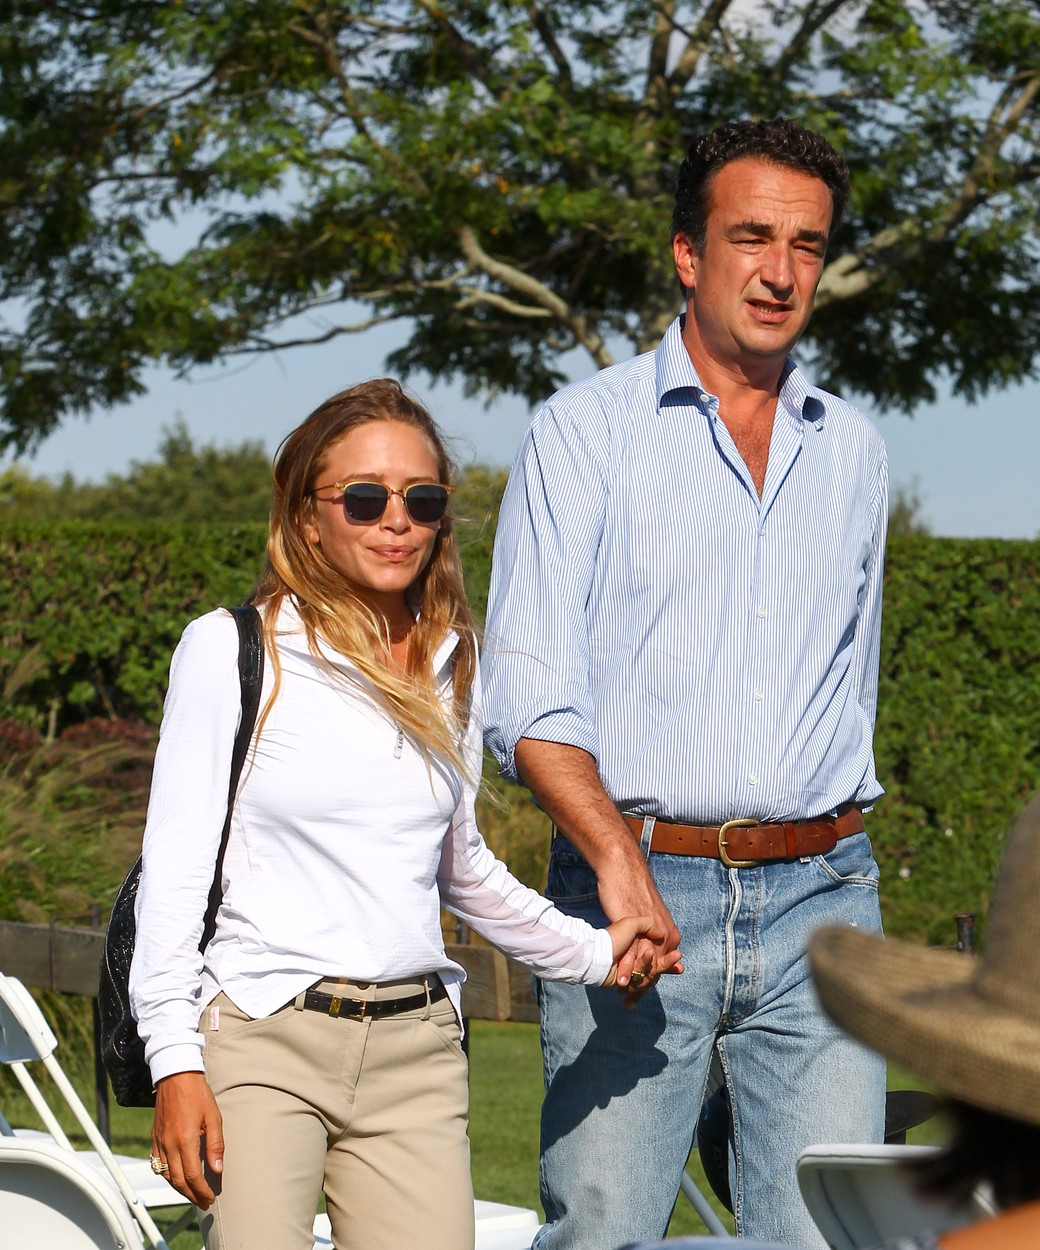 EXCLUSIVE TO INF. August 27, 2015: Mary-Kate Olsen, dressed in riding gear, and husband Olivier Sarkozy, are seen holding hands while attending the 2015 Hampton Classic Horse Show in the Hamptons, New York. Mary-Kate and twin sister Ashley are currently involved in a lawsuit filed against their company, Dualstar. The suit was brought by a group of former interns who are claiming the company has failed to pay about 40 past and present employees, who had to work long hours performing menial tasks., Image: 256682216, License: Rights-managed, Restrictions: CODE000, Model Release: no, Credit line: Profimedia, INF